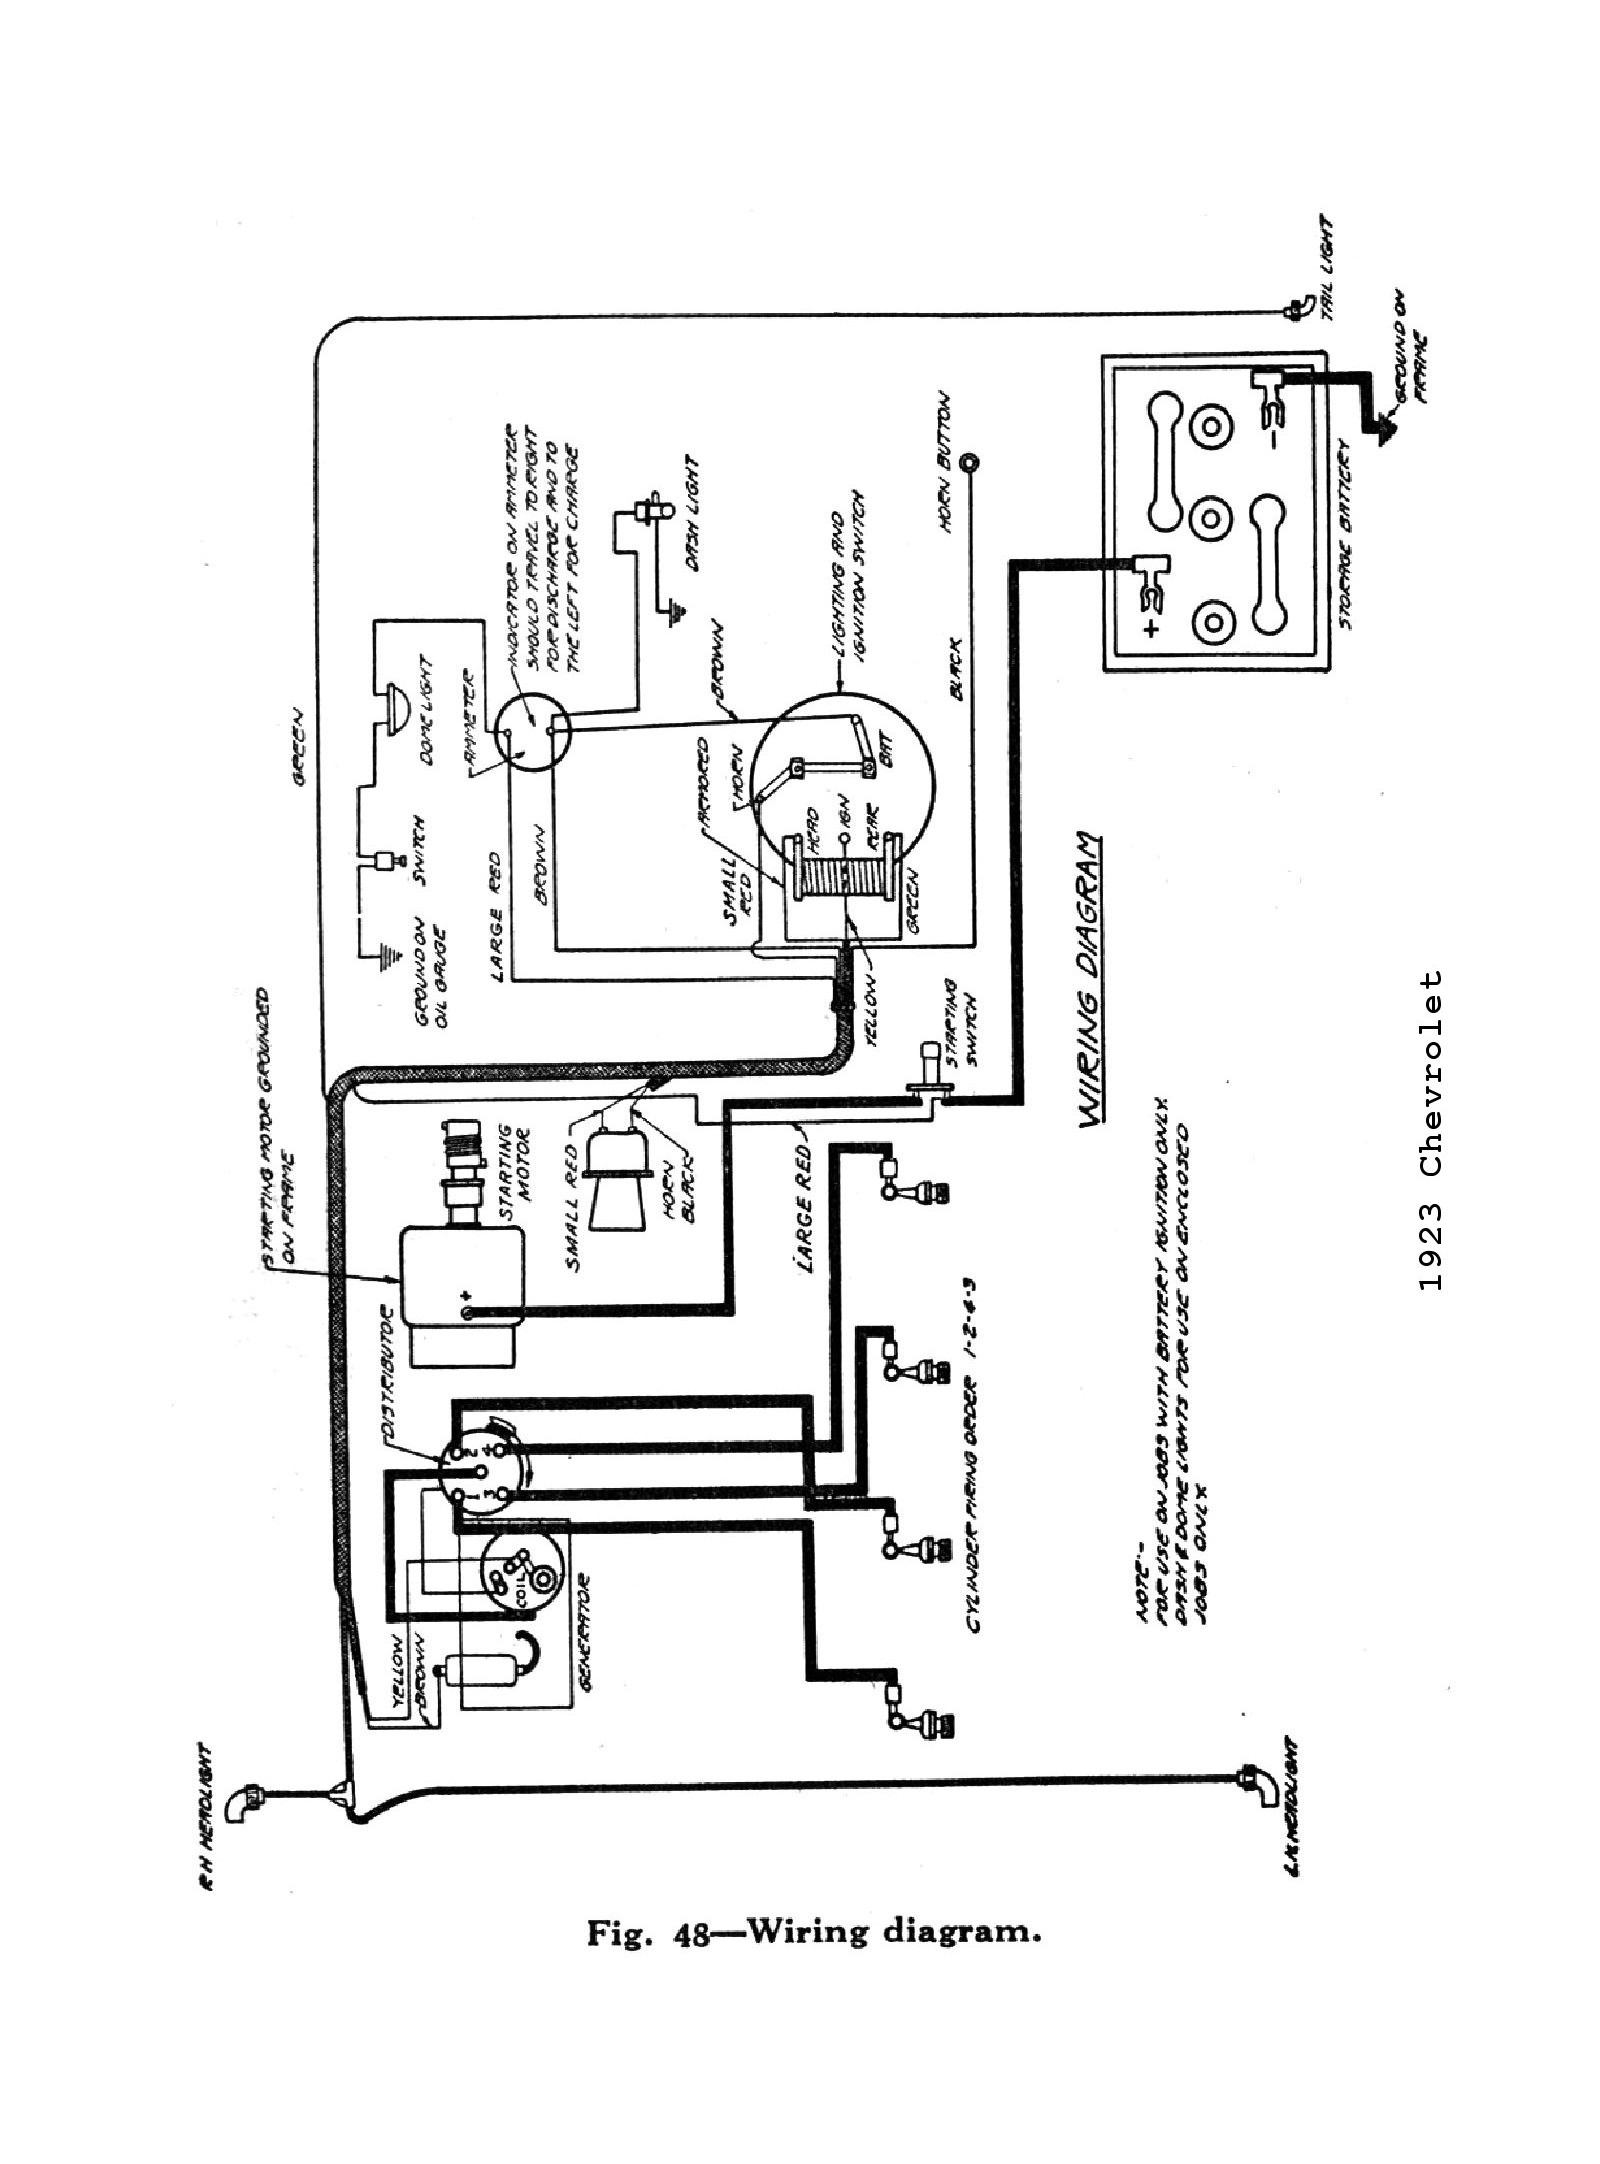 72 Impala Wiring Diagram on 1963 chevy c10 wiring diagram